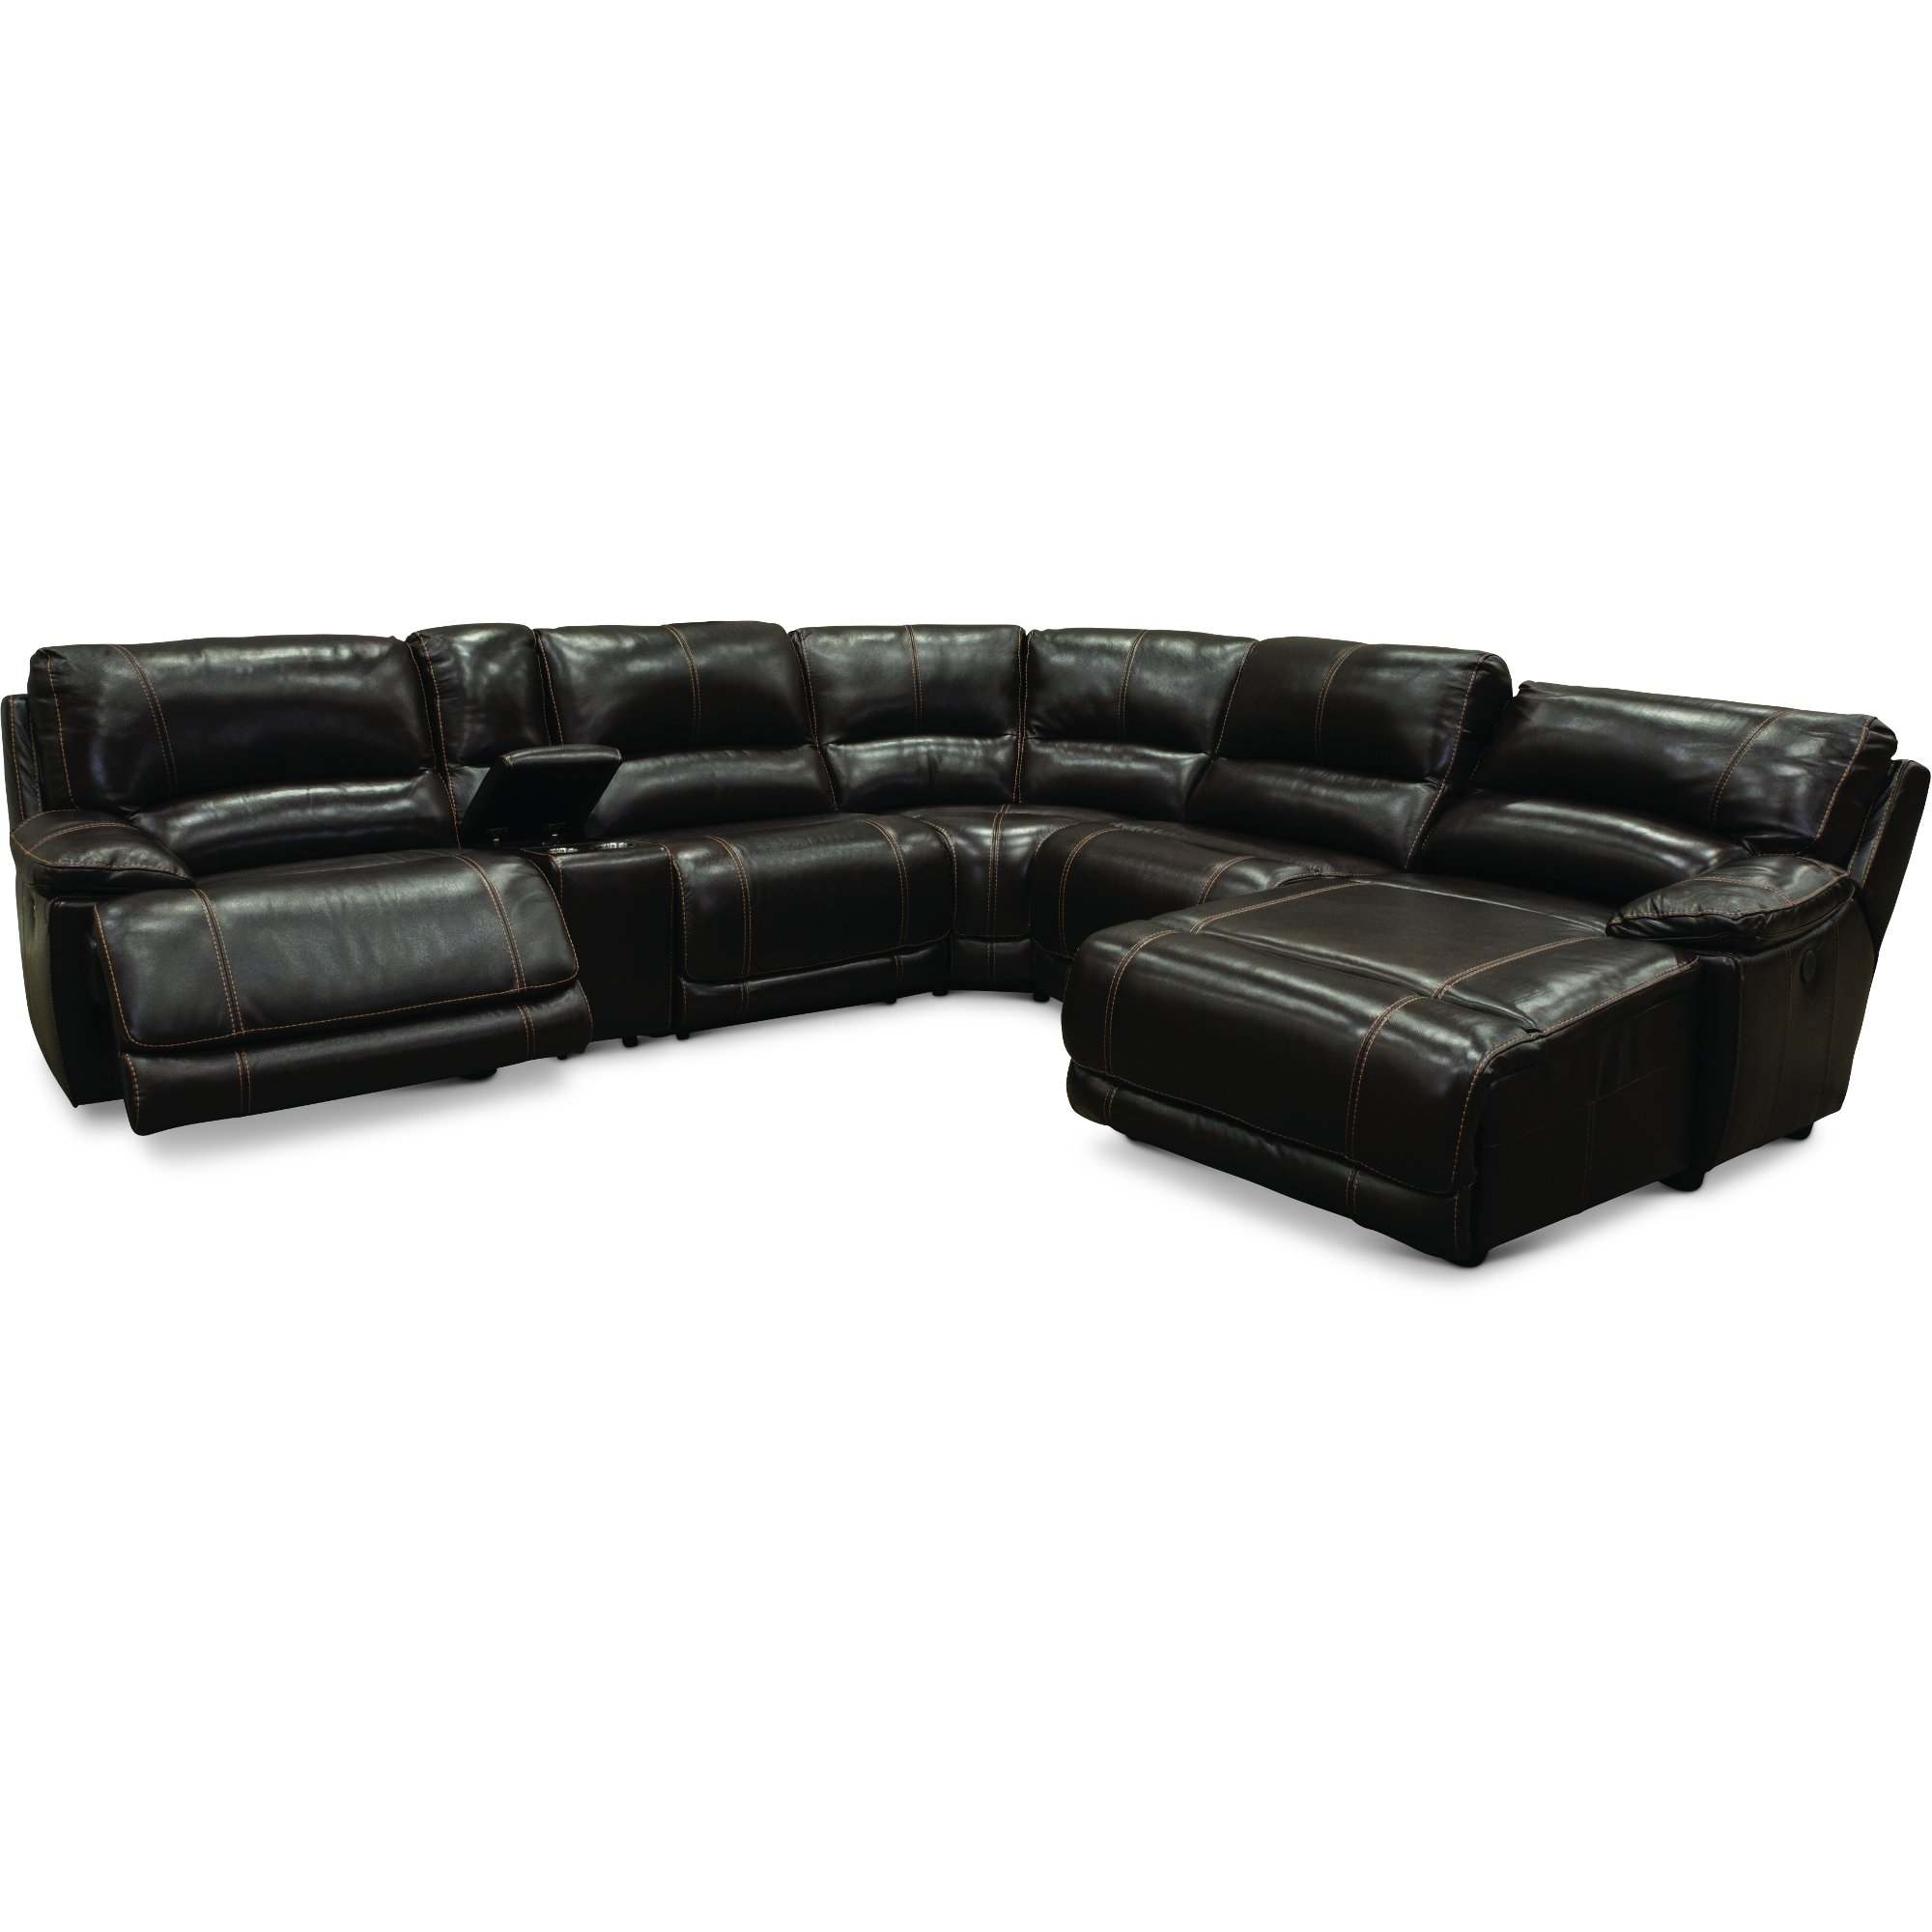 6 Piece Reclining Sectional Sofa | Baci Living Room Intended For Denali Light Grey 6 Piece Reclining Sectionals With 2 Power Headrests (Photo 12 of 30)